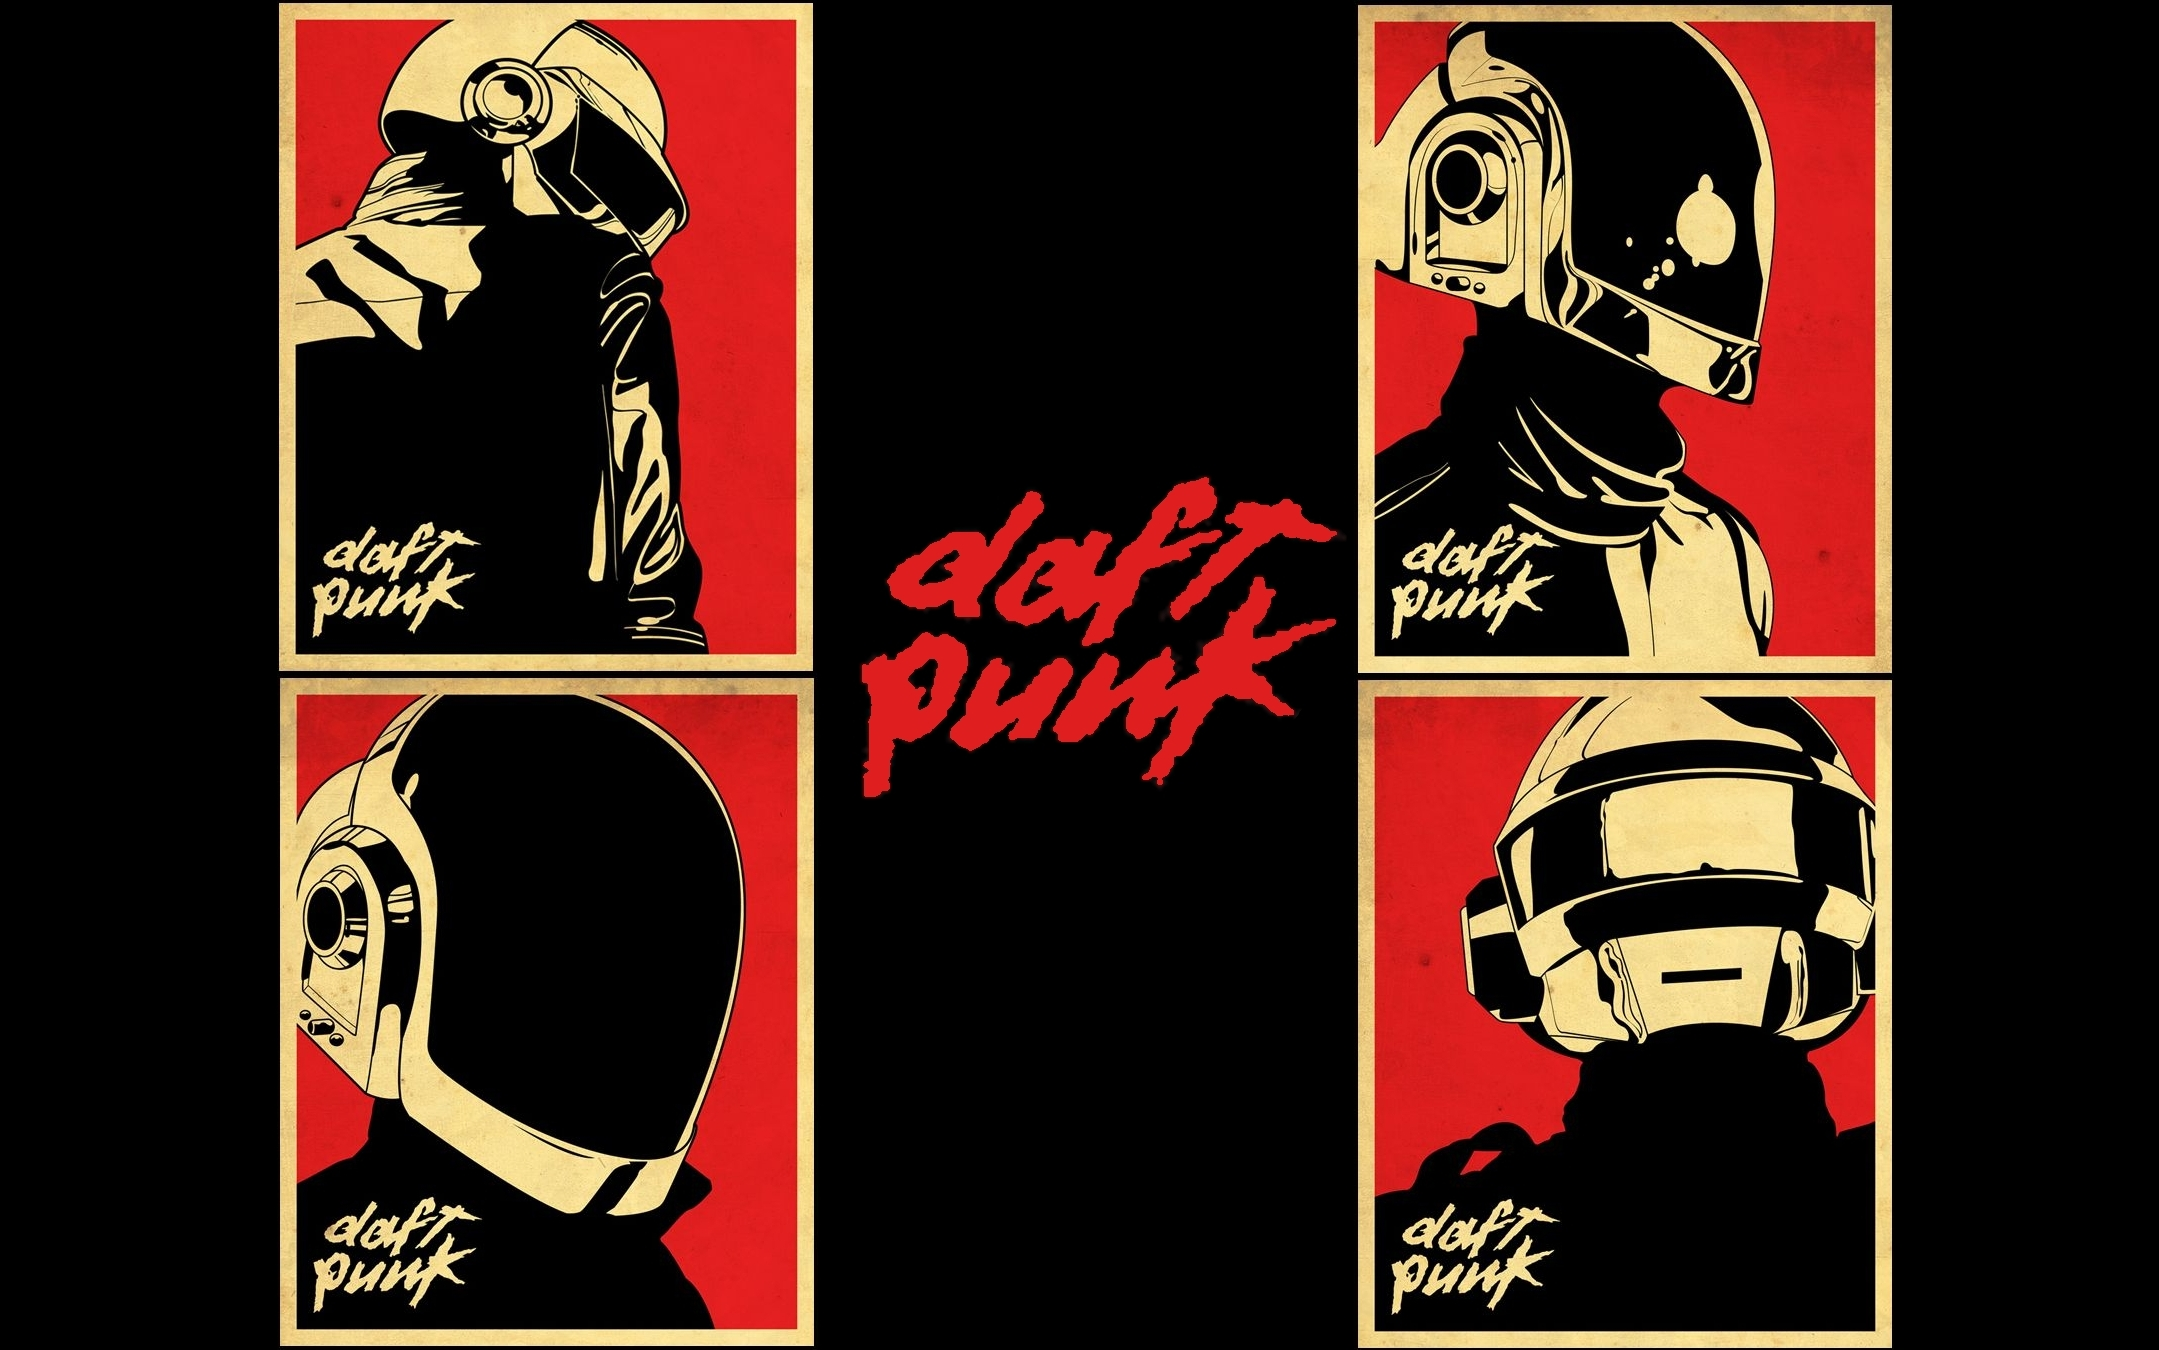 244 Daft Punk Hd Wallpapers Background Images Wallpaper Abyss